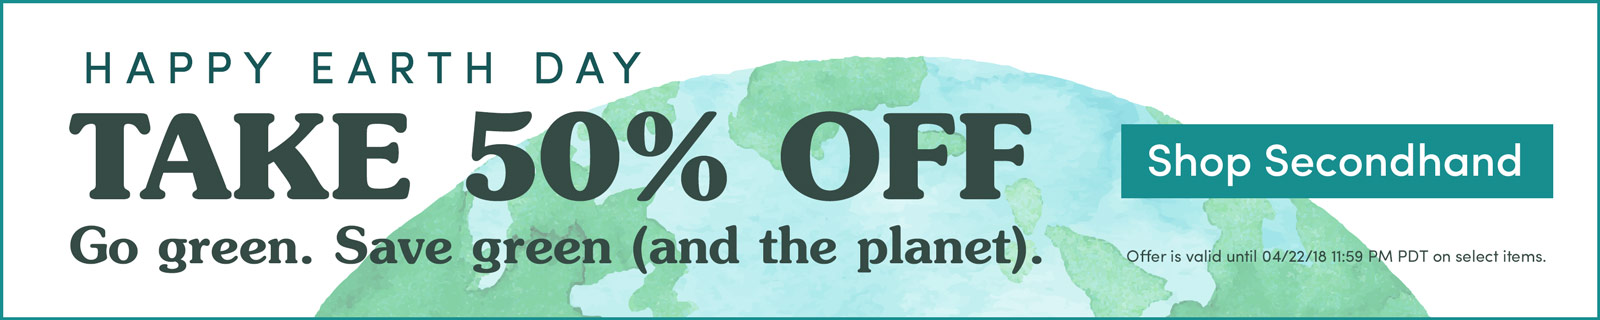 Happy Earth Day–Take 50% OFF! Go green. Save green (& the planet). [Shop secondhand]